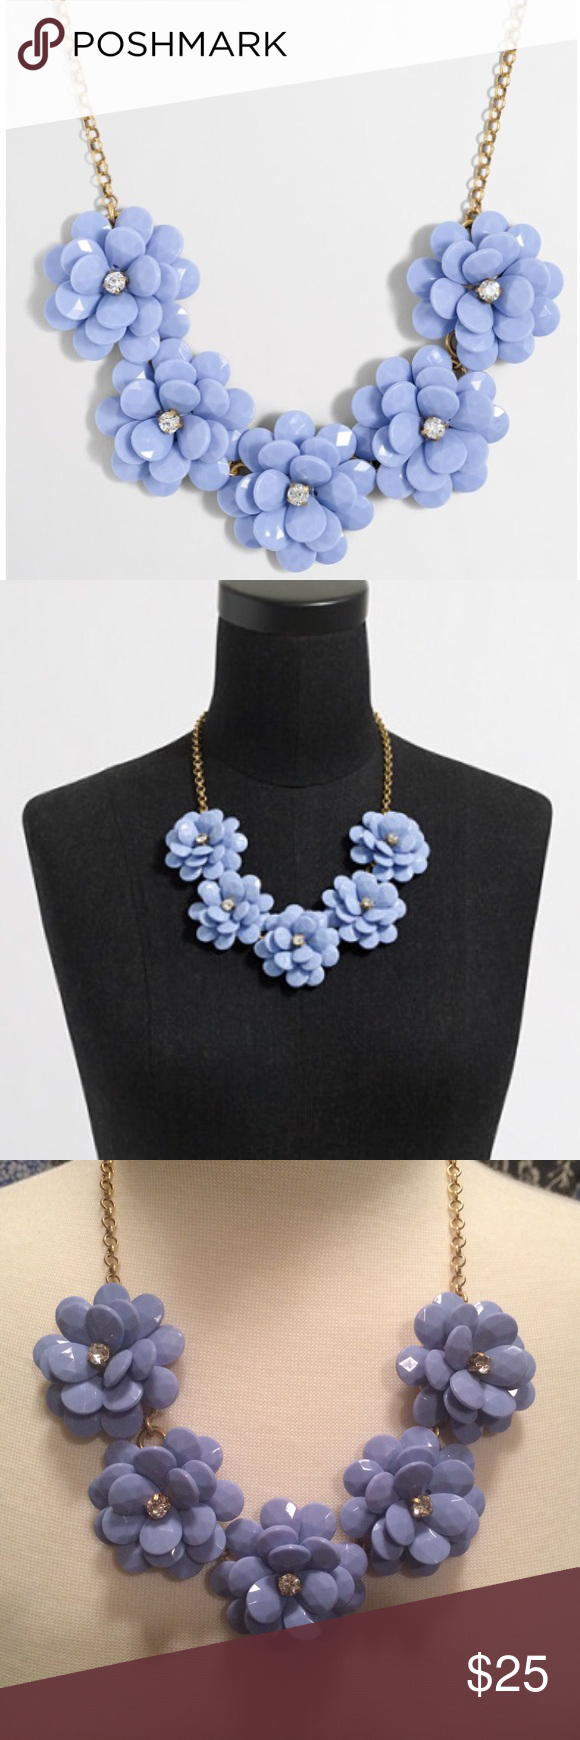 741cd1401fcf37 J Crew Factory Crystal Floral Burst Necklace Hydrangea. NWT, fabric pouch  included. J.Crew Factory Jewelry Necklaces